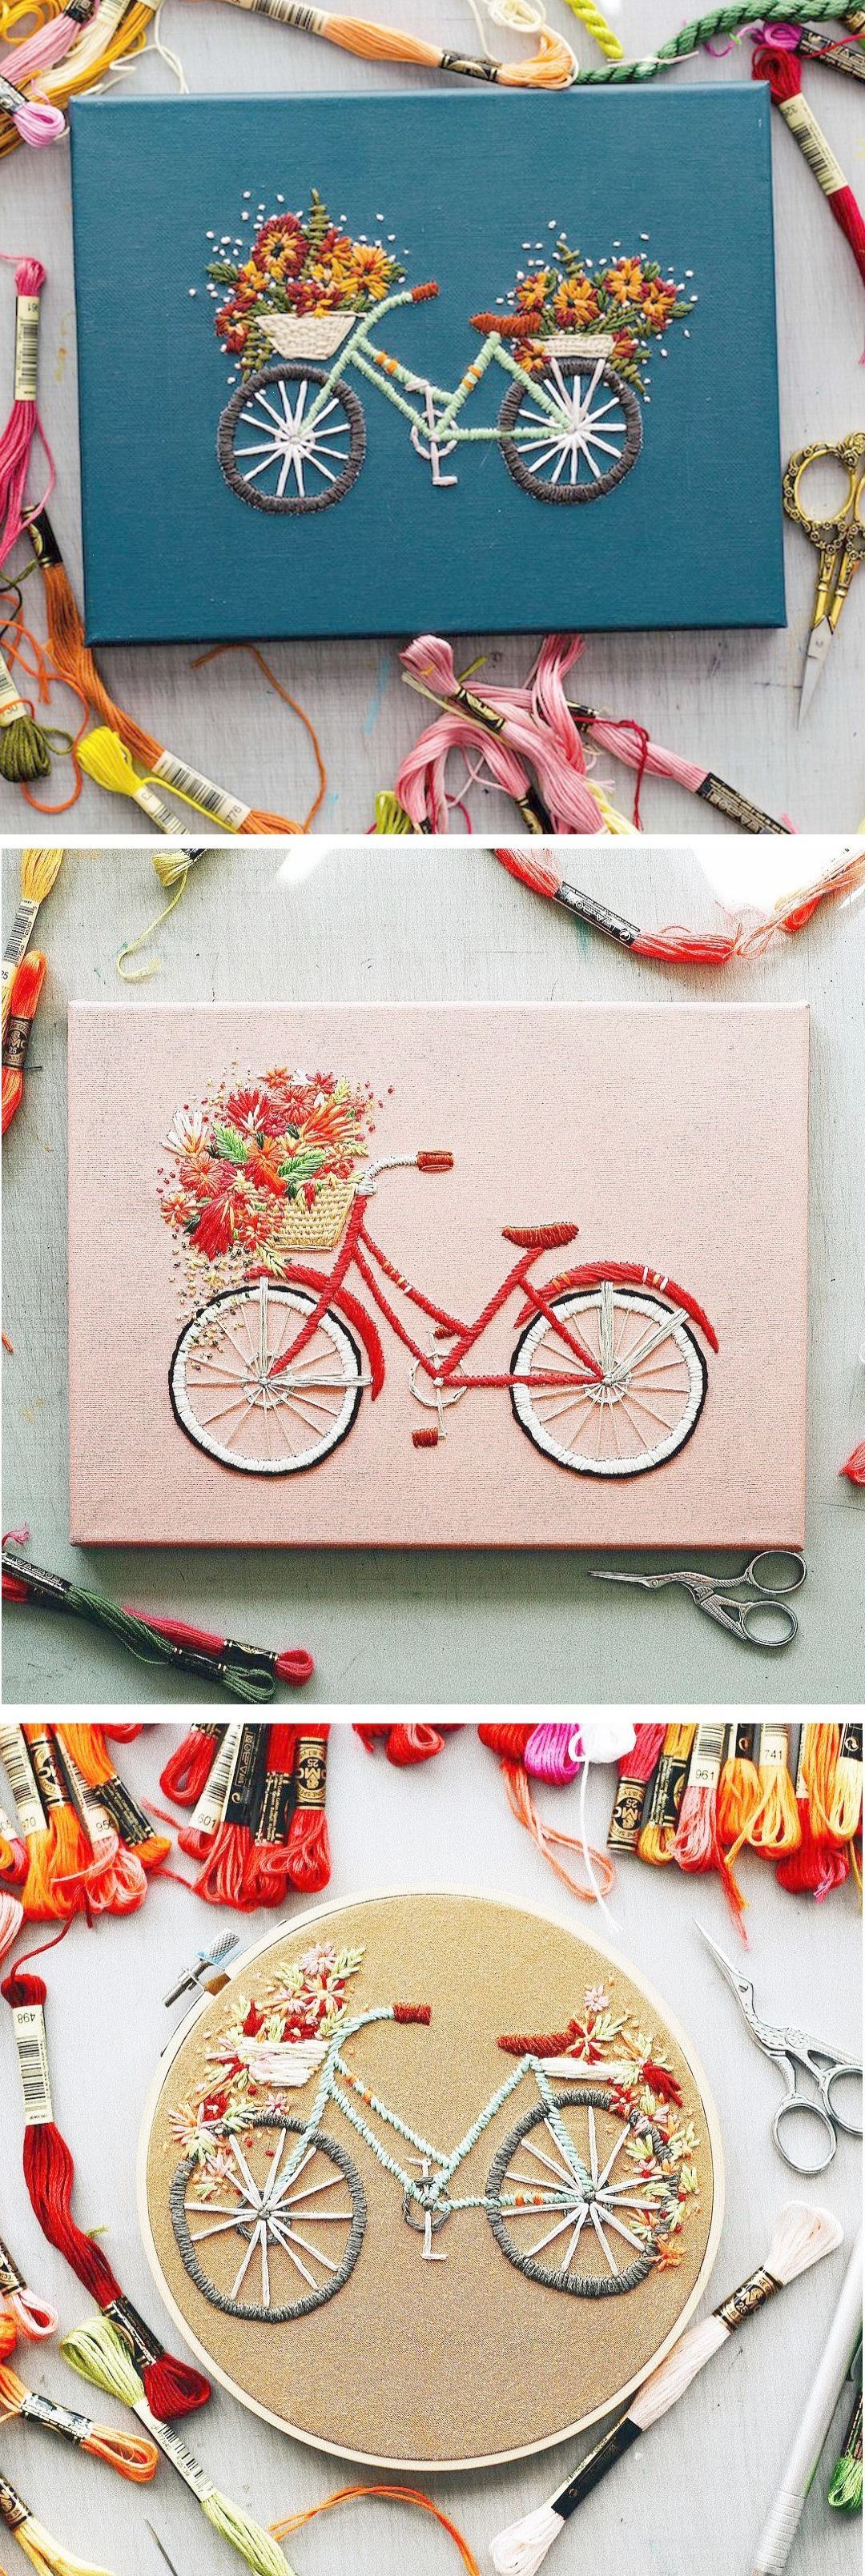 Modern Embroidery By Truefort - Bicycle Embroidery - Embroidery Ideas